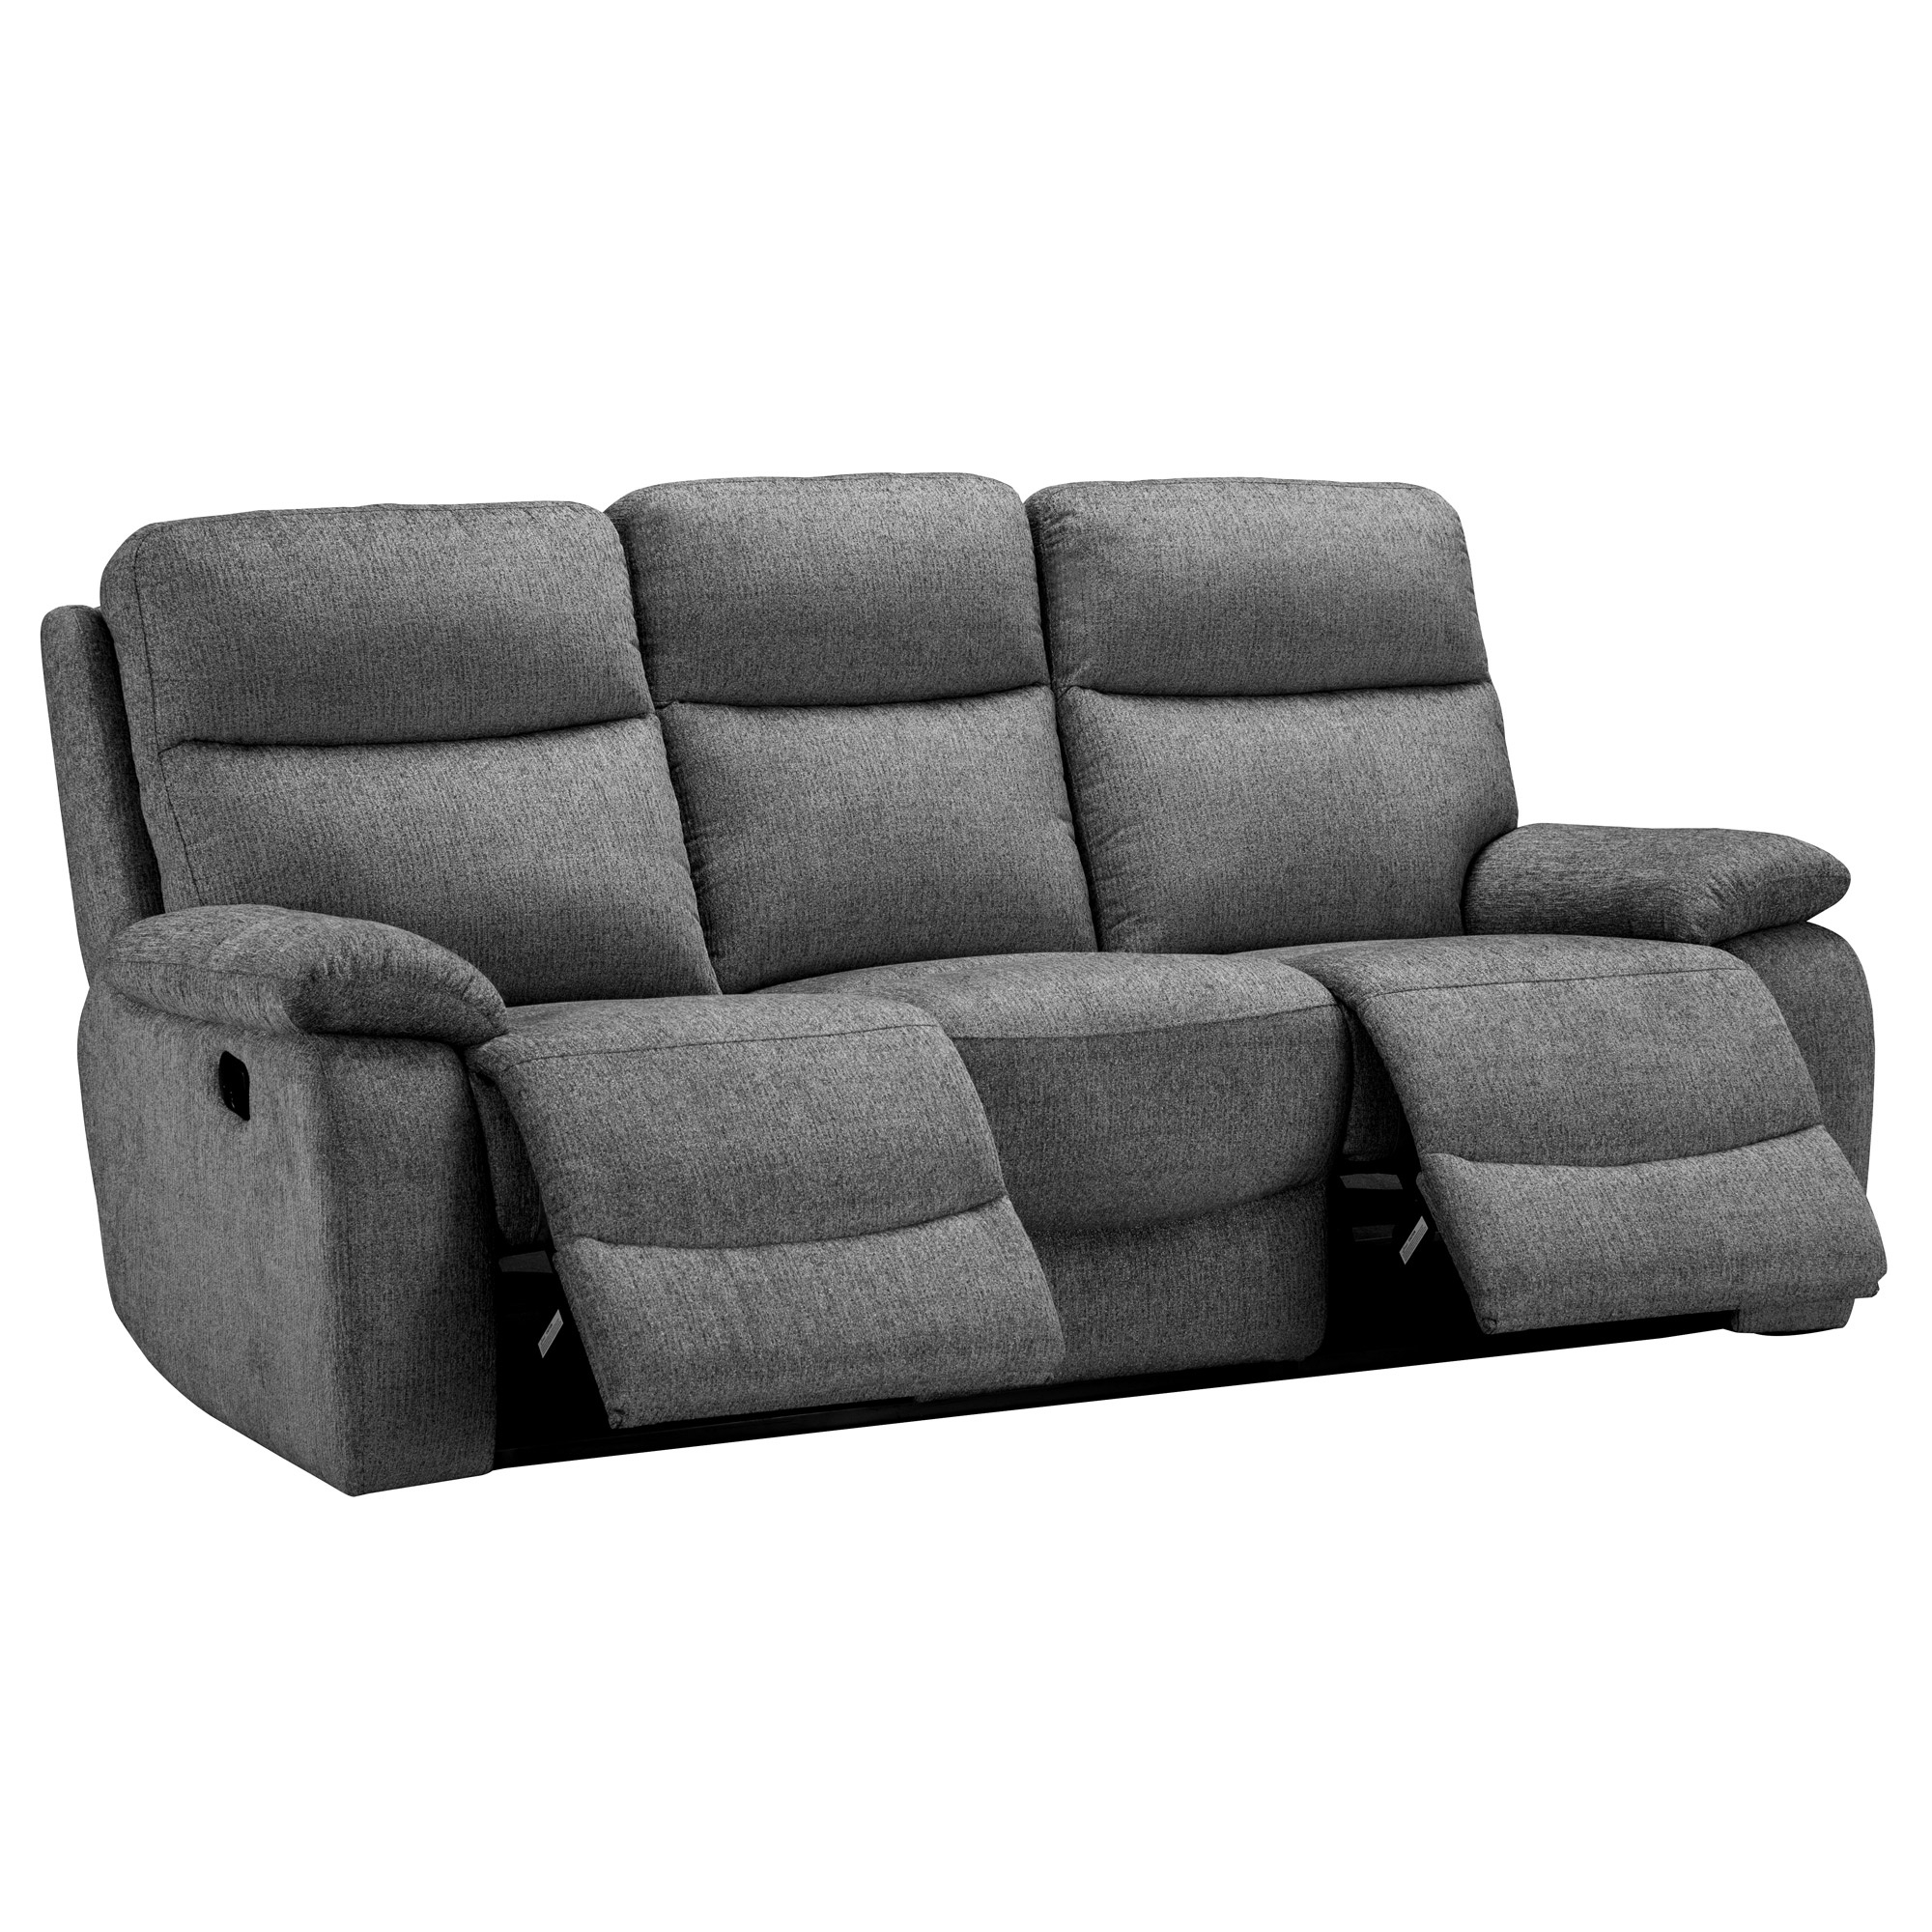 Crompton Grey Fabric 2 & 3 Seater Recliner Sofa Group With Regard To Fabric Sofas (View 8 of 15)